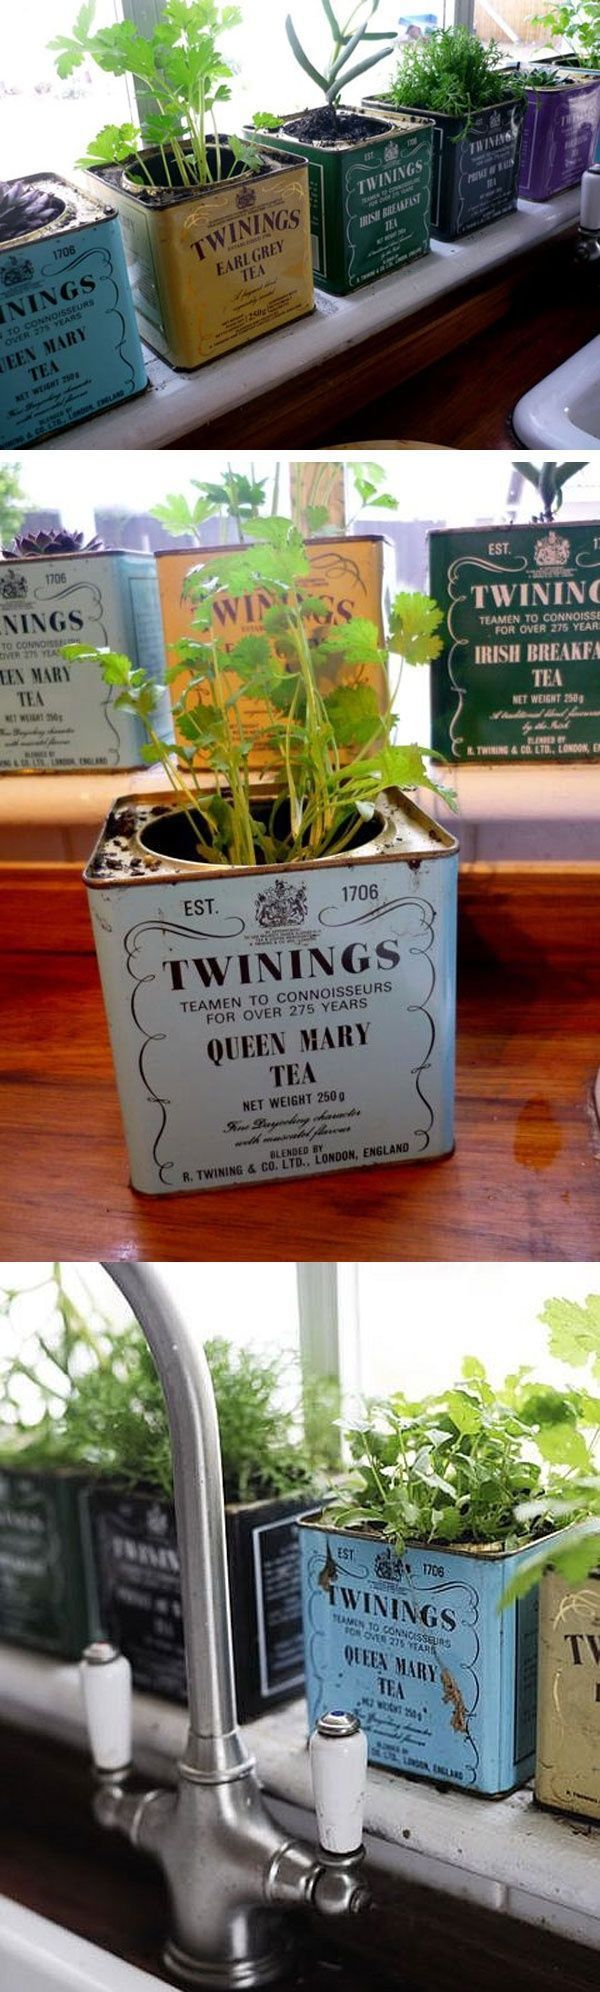 Twinings and other tea tins for herbs. 30 Amazing DIY Indoor Herbs Garden Ideas